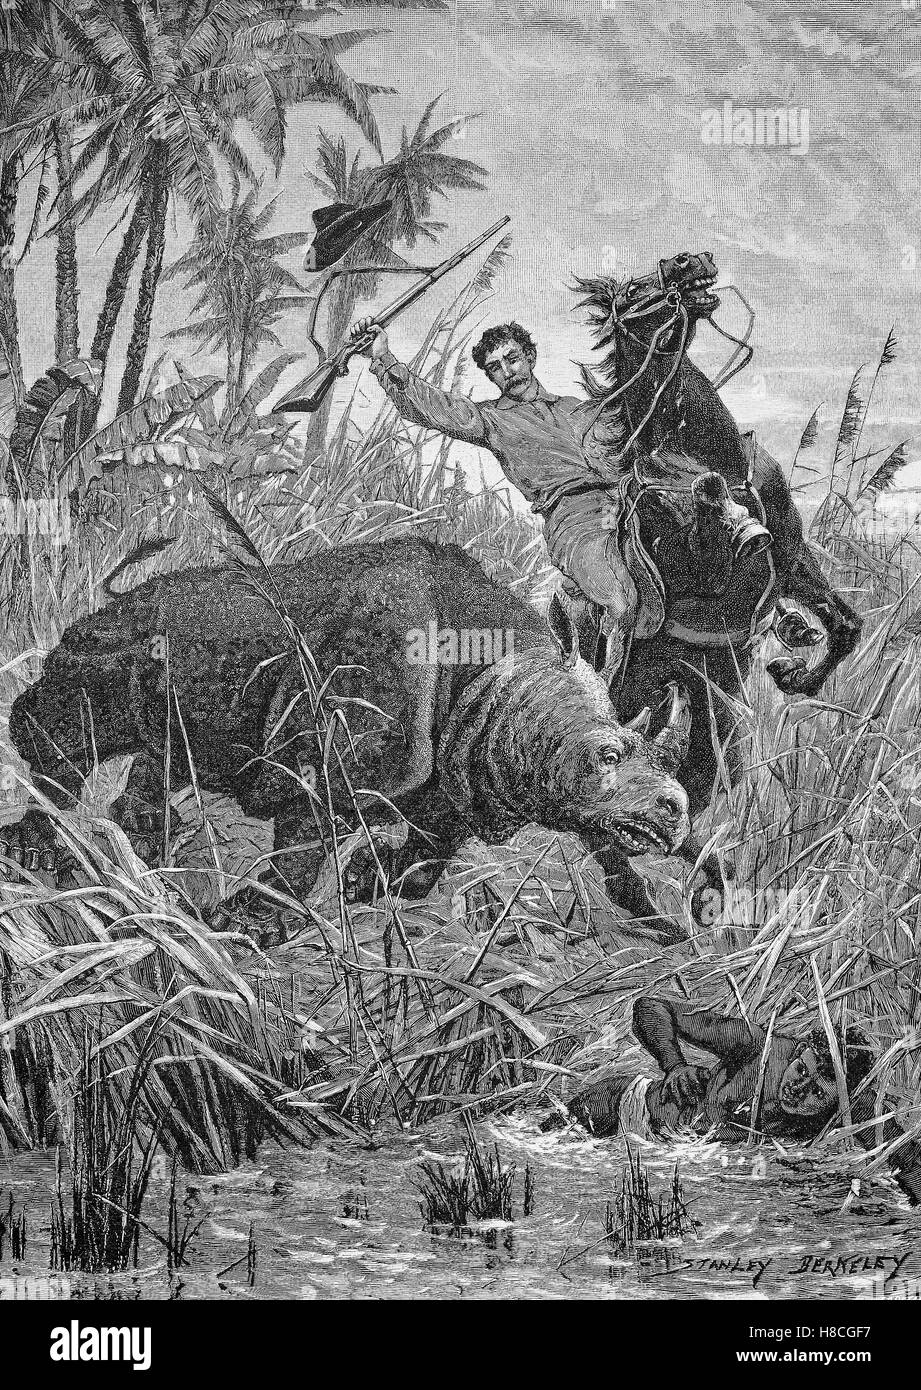 Rhinoceros Hunting in Africa, Woodcut from 1892 - Stock Image